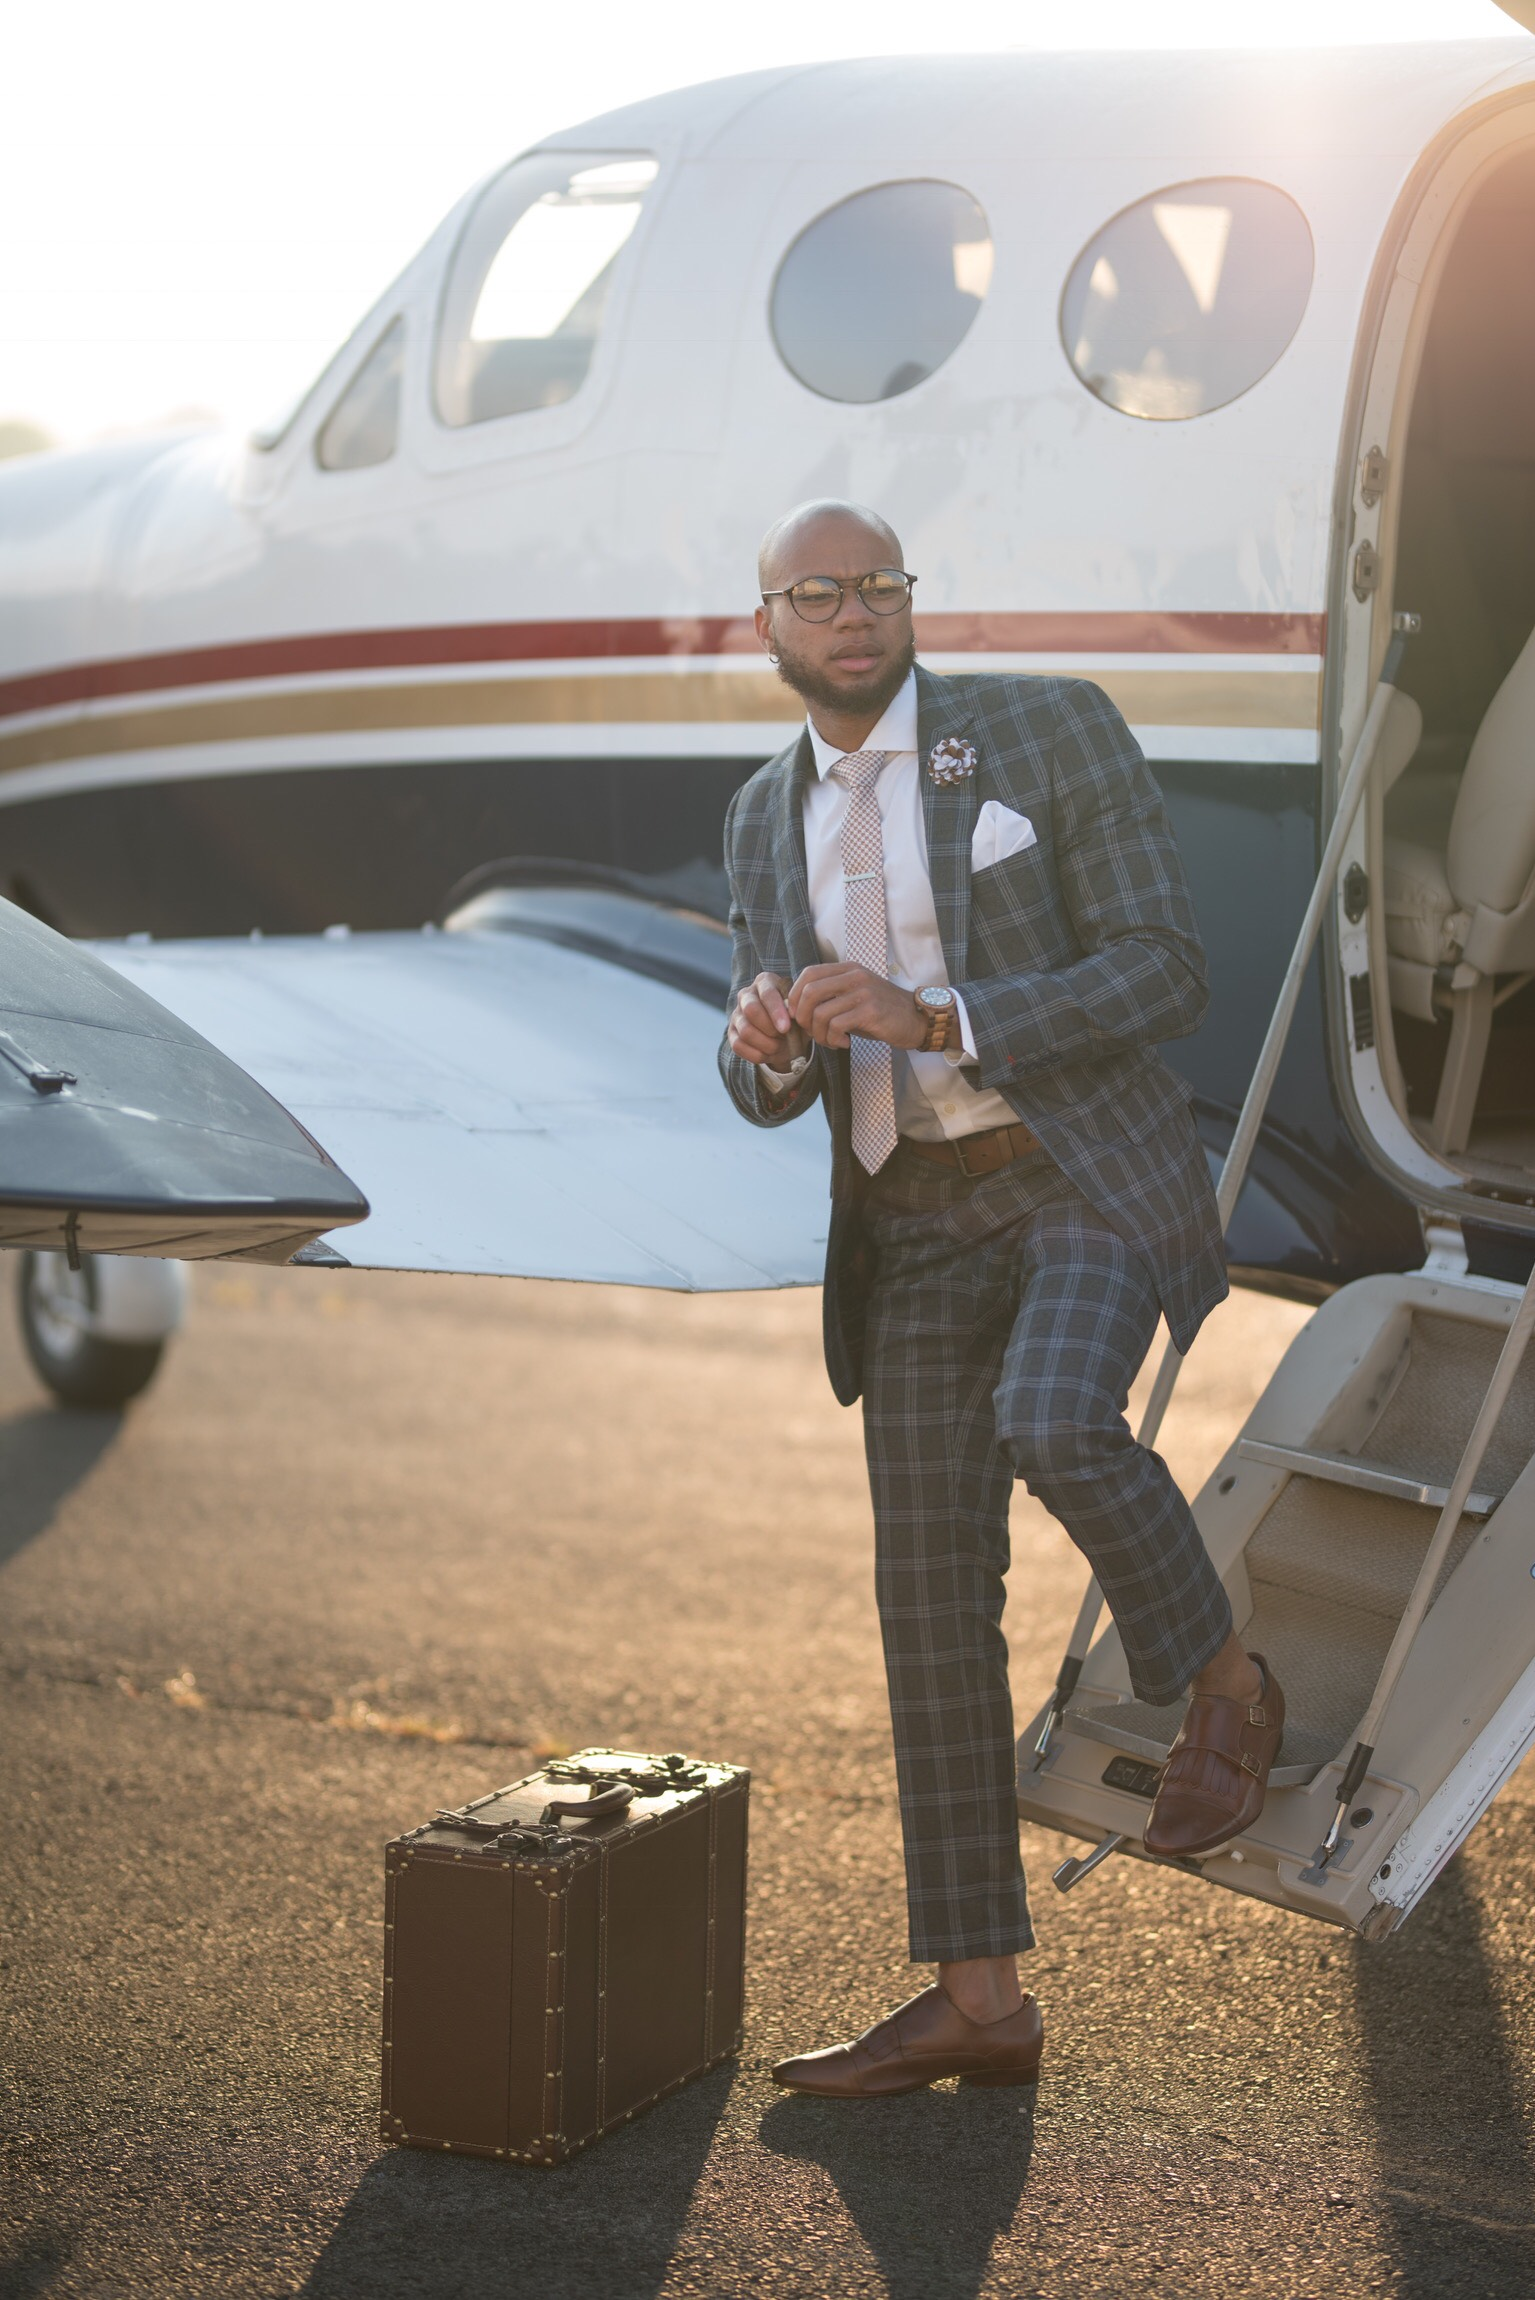 Eric Jones rocking his suit and his shoe Brand